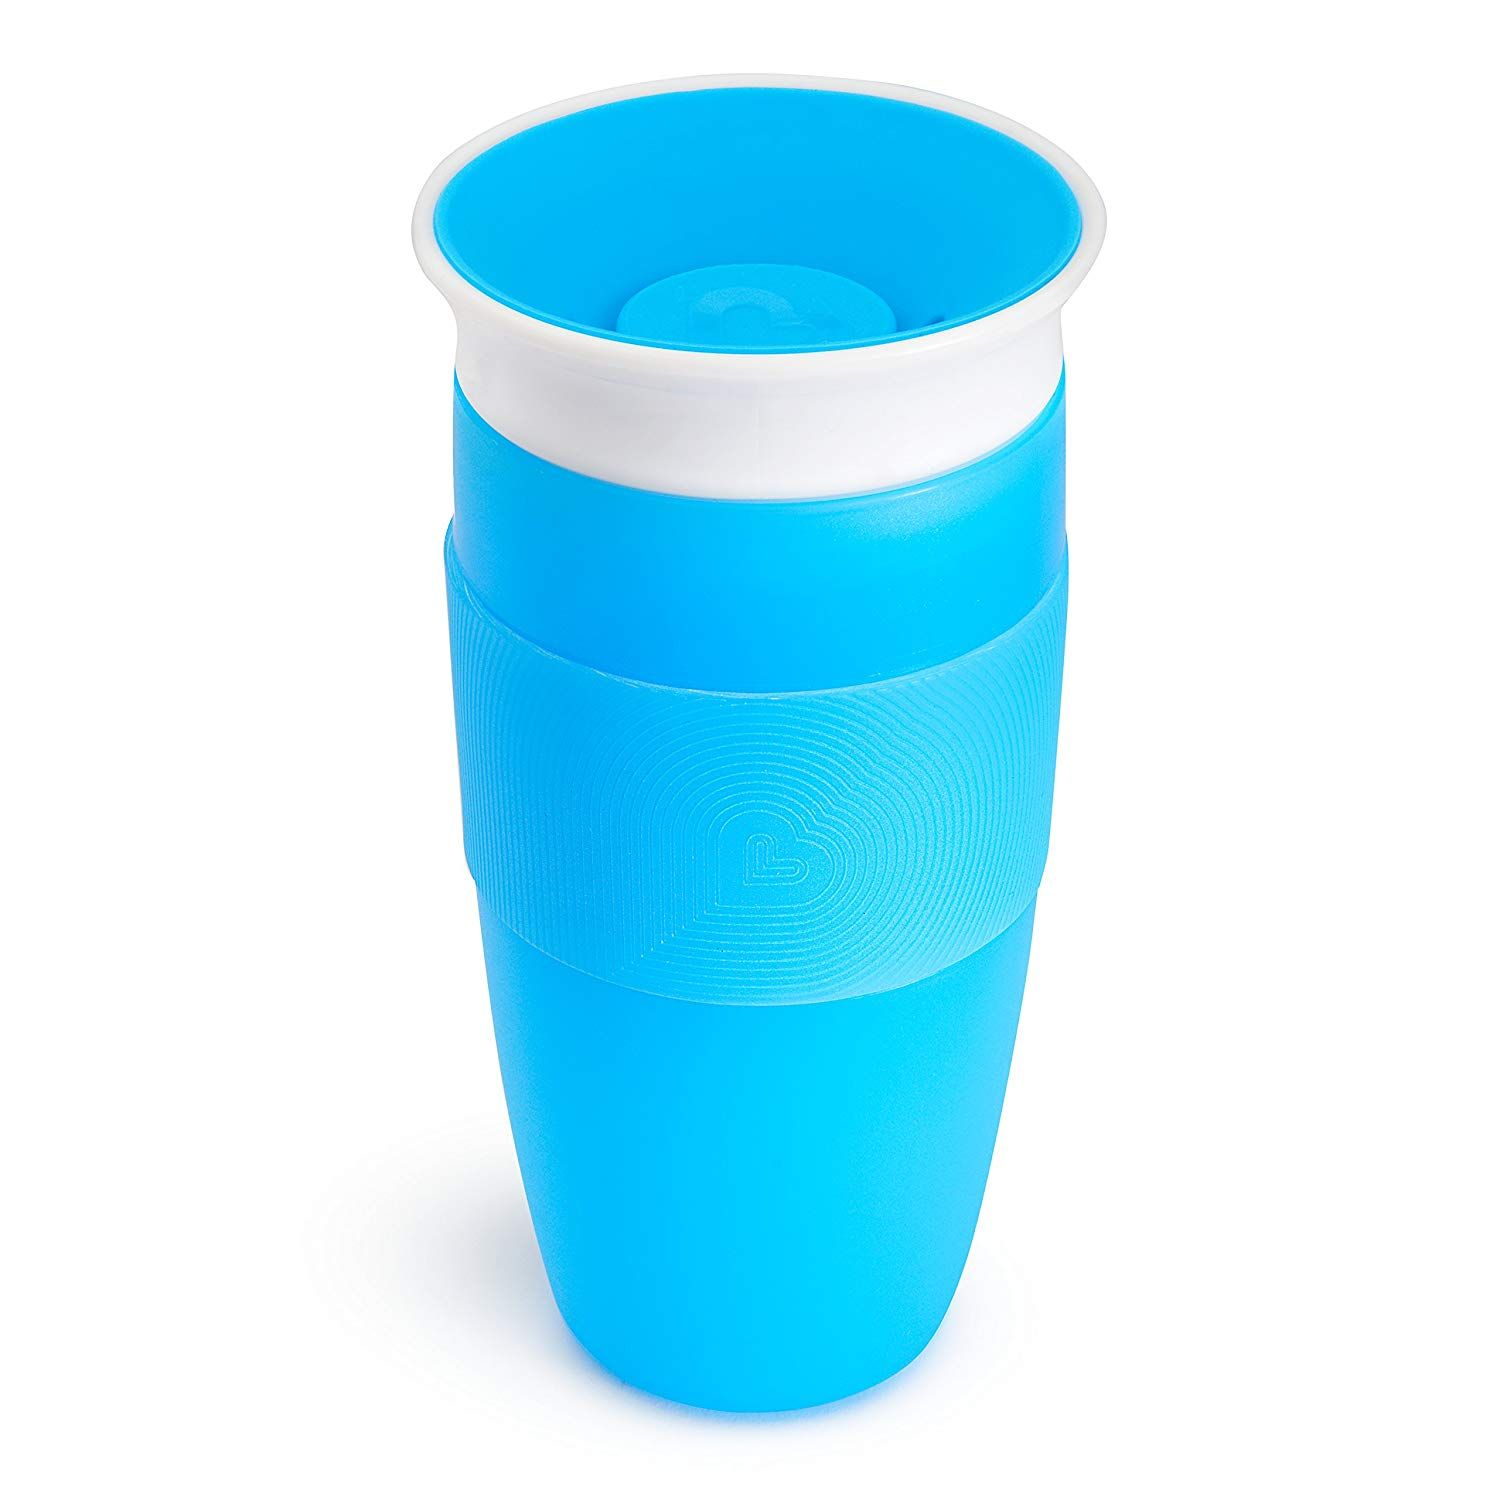 14oz Toddler Cup With Dentist Recommended Spotless Design 360 Edge Allows Drinking From Any Side Of The Cup Simply Tilt The Cu In 2020 Sippy Cup Toddler Cup Munchkin